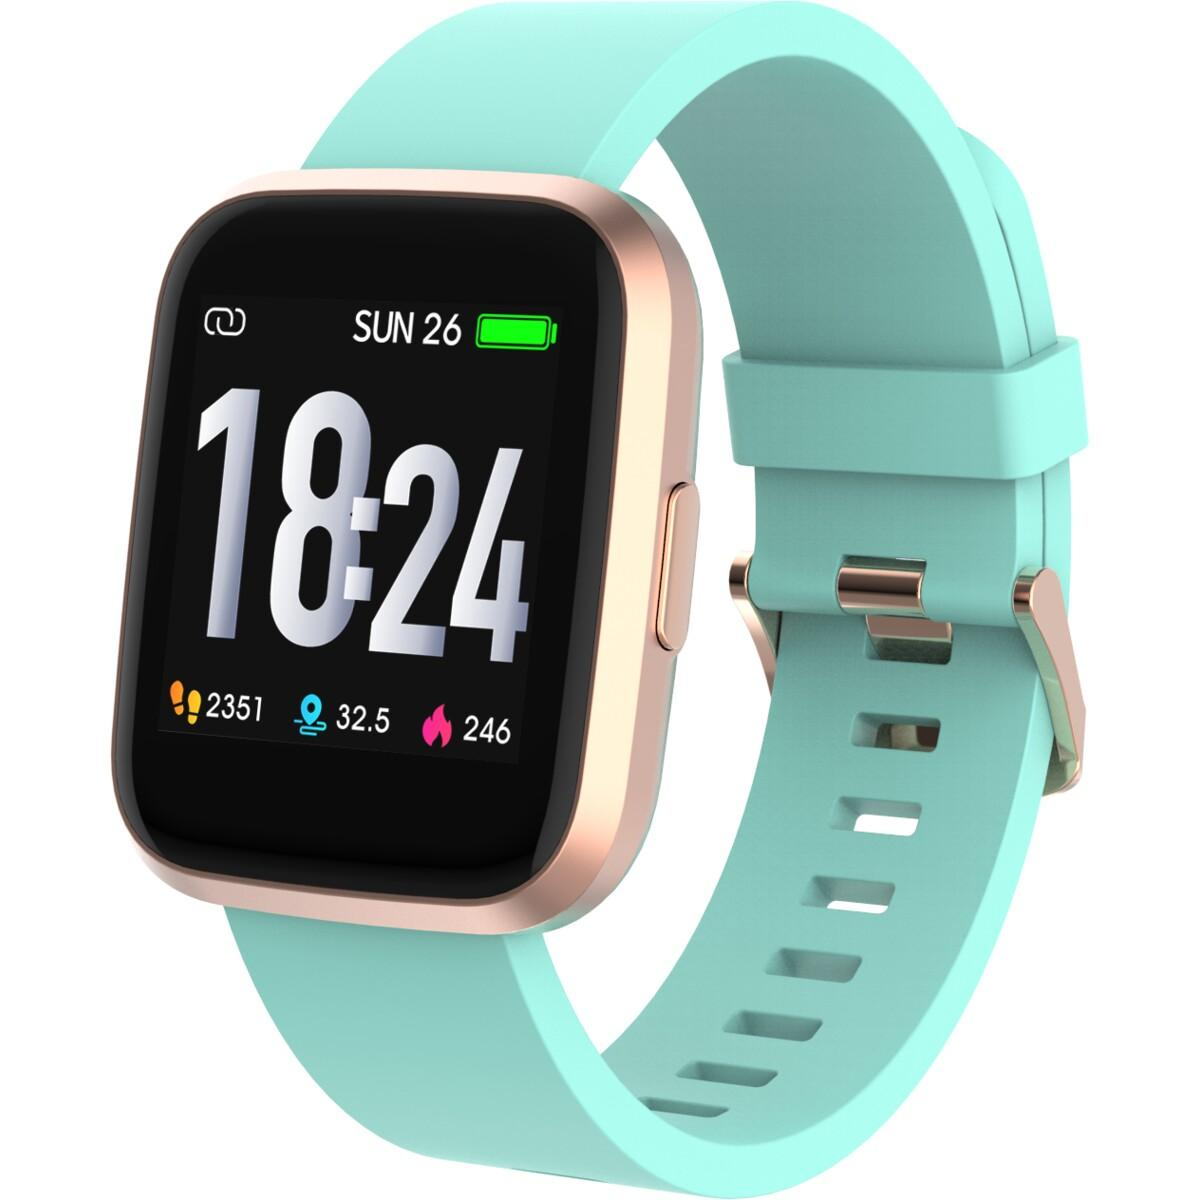 DGTEC Smart Watch – Mint/Pink